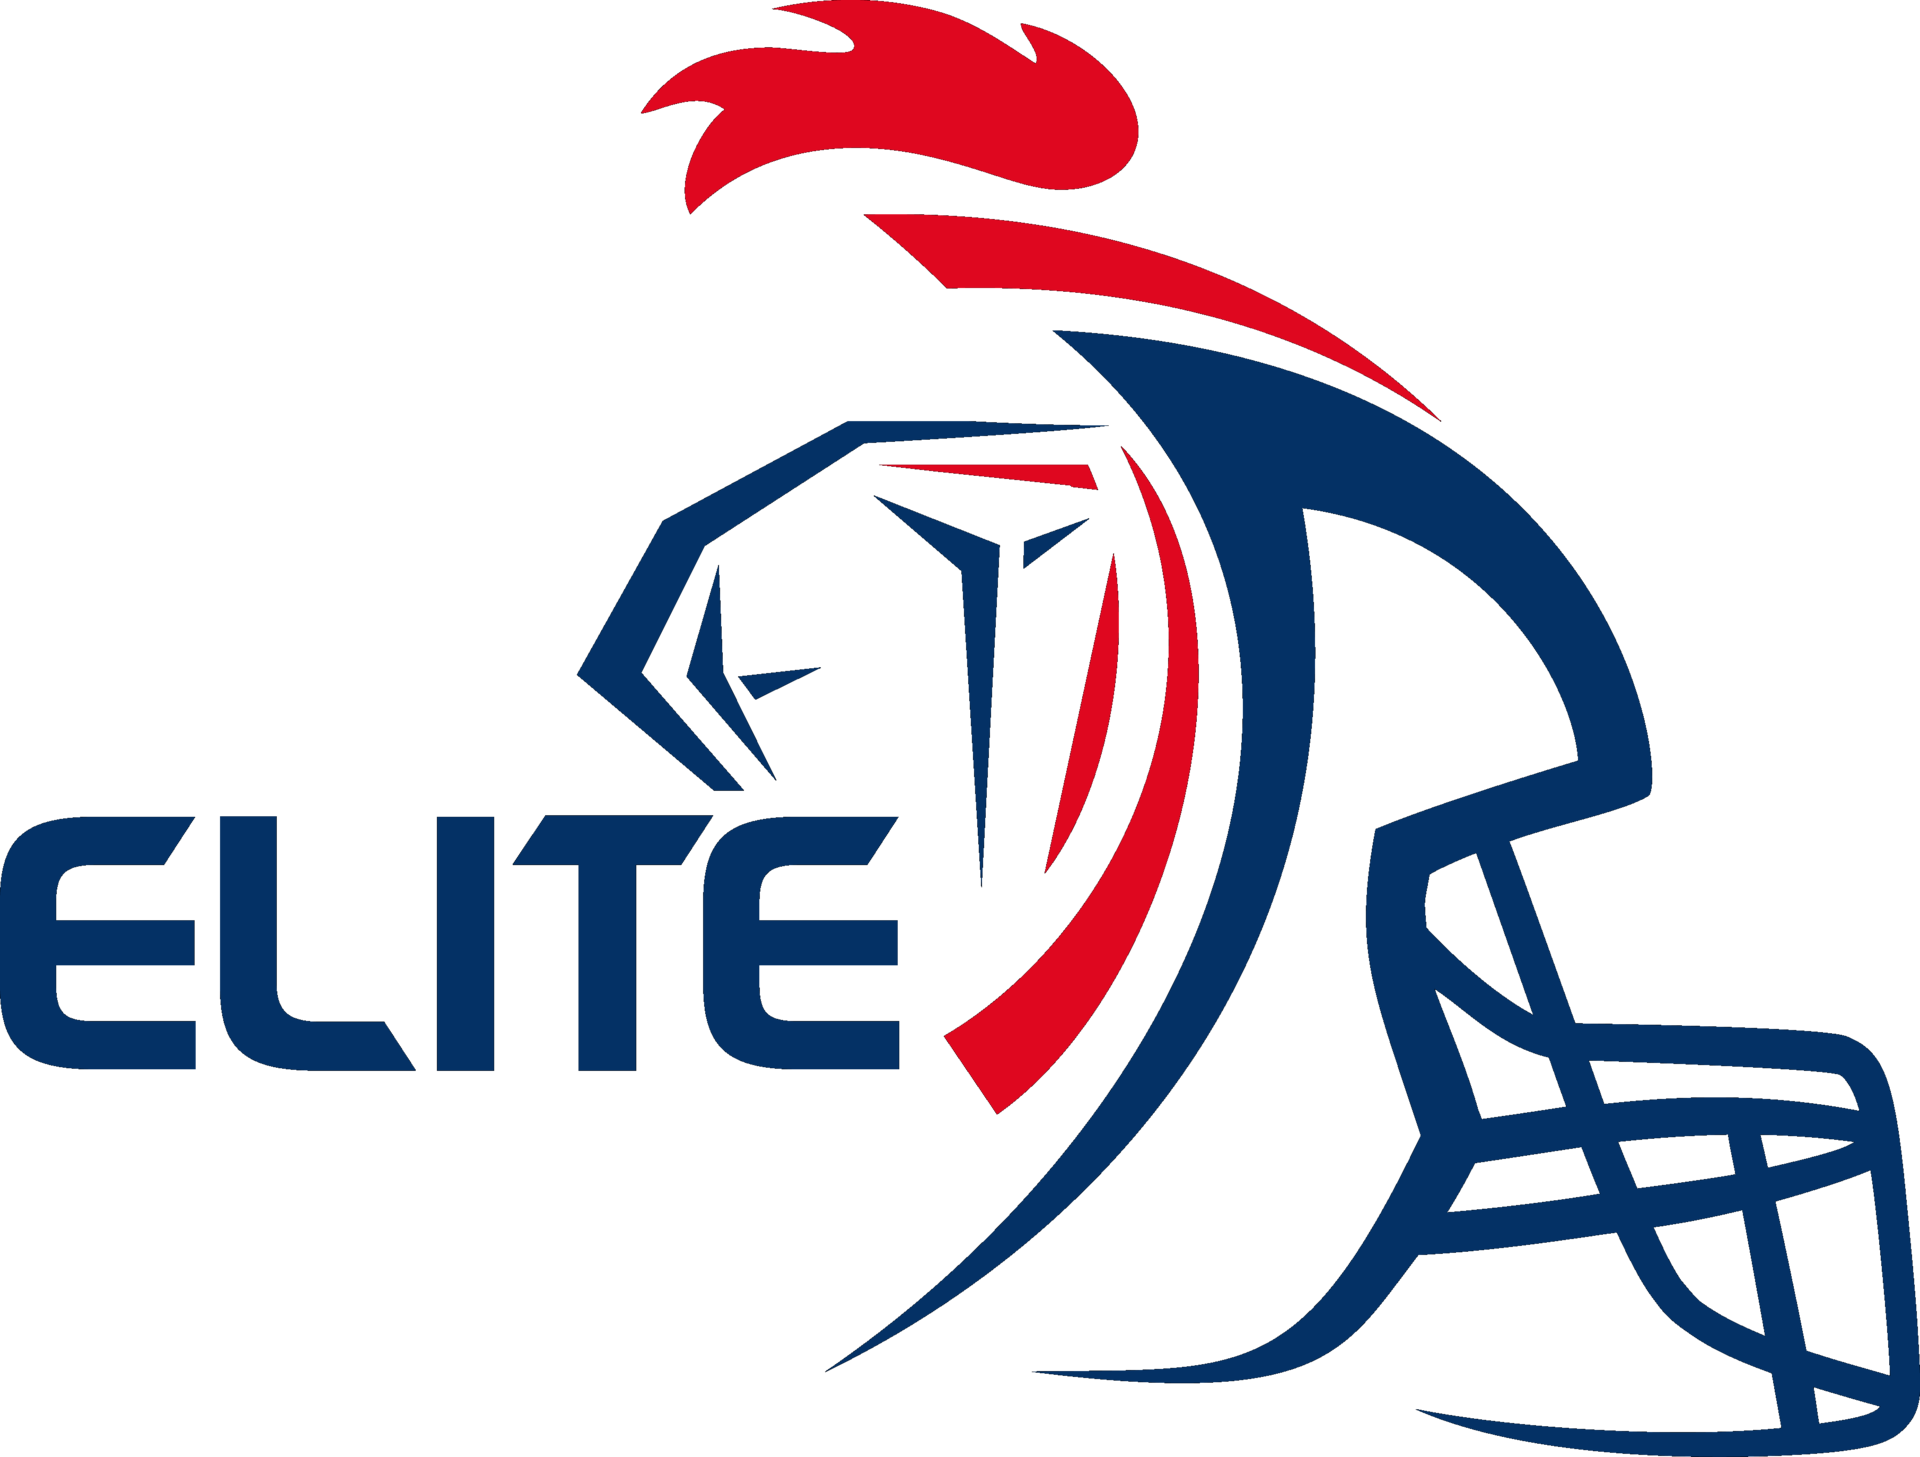 Championnat de france de football am ricain 2015 wikip dia - Logo championnat foot ...